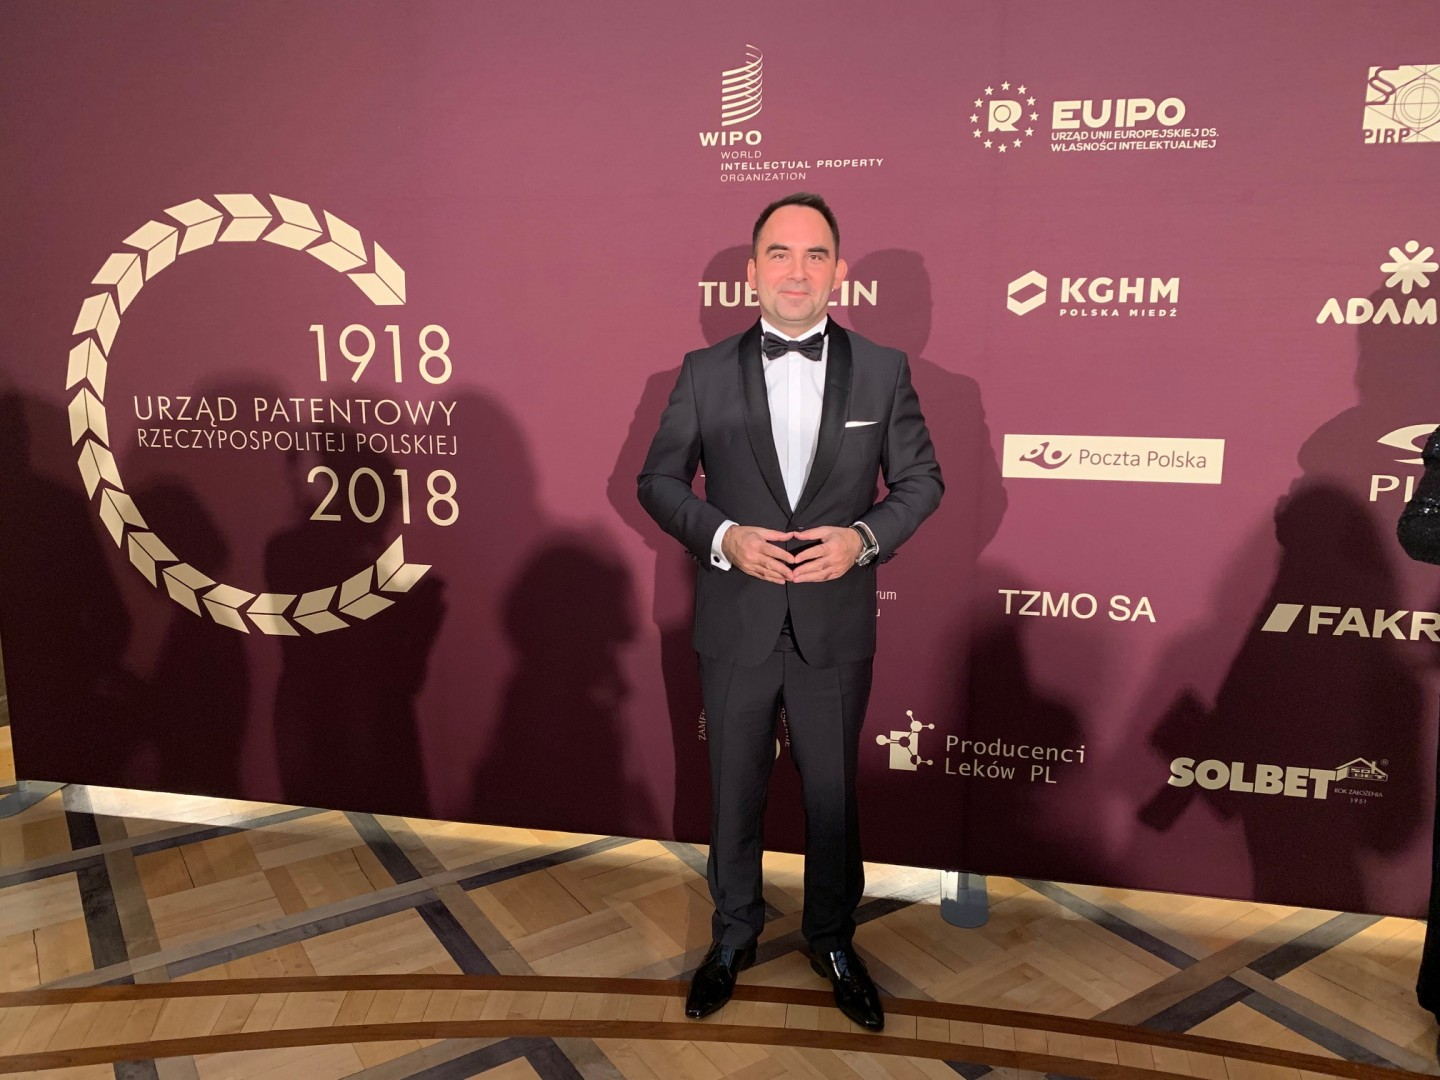 Gala of the 100th anniversary of the Polish Patent Office